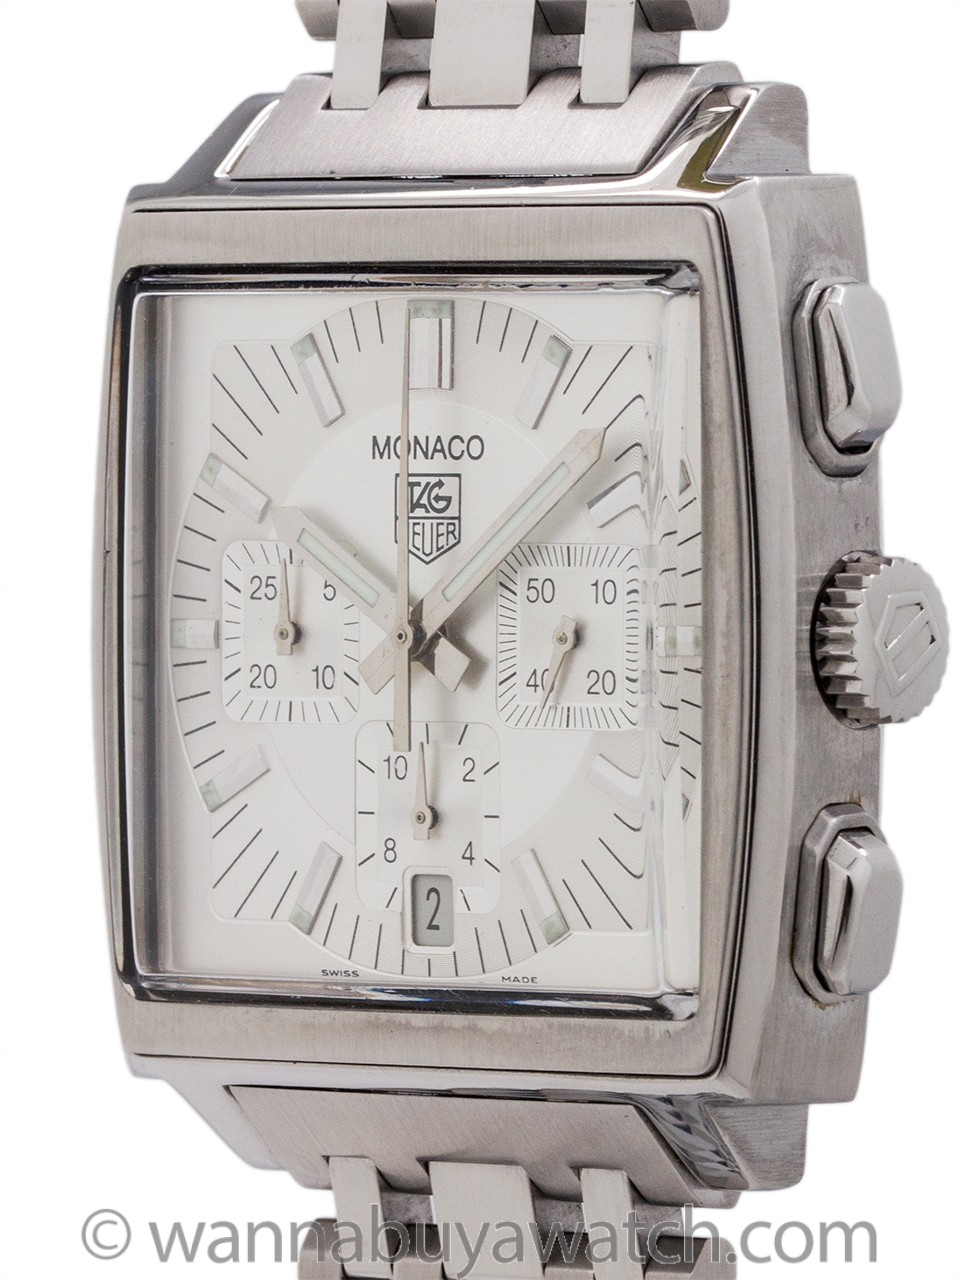 Tag Heuer Monaco Chronograph Re-issue Reference CW2112